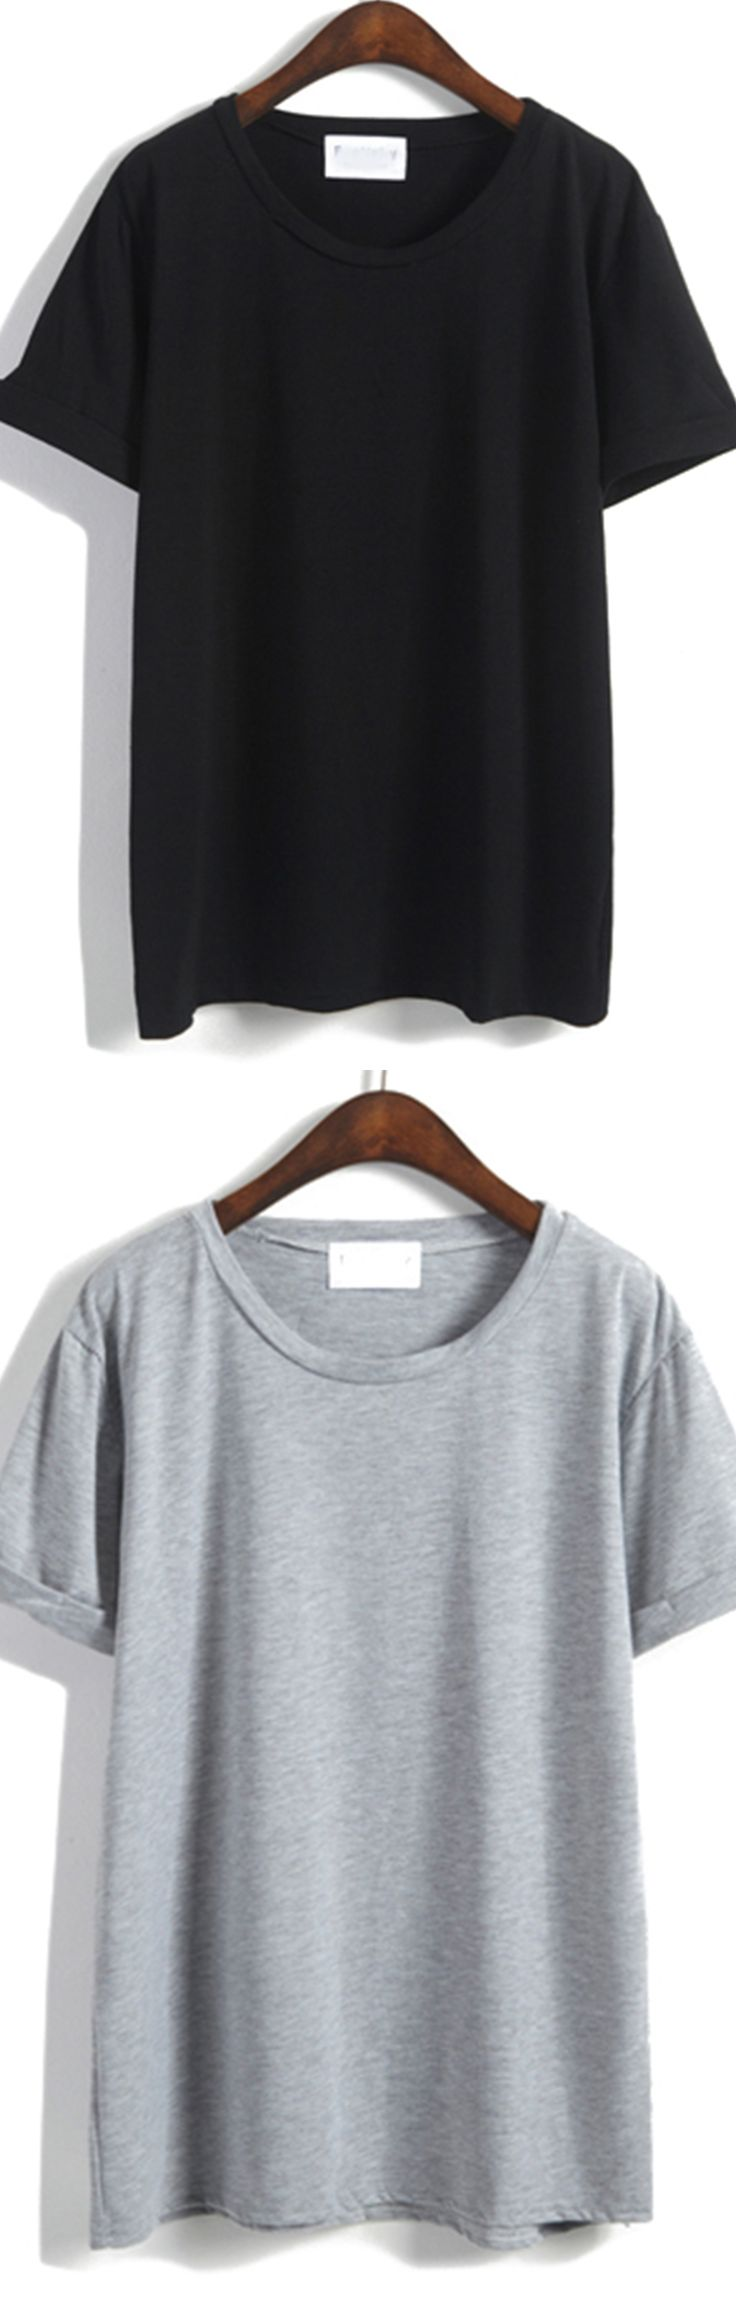 Cuffed Loose Black T-shirt at romwe.com.There colors here for you.Click&sign up for yp to 60% off!